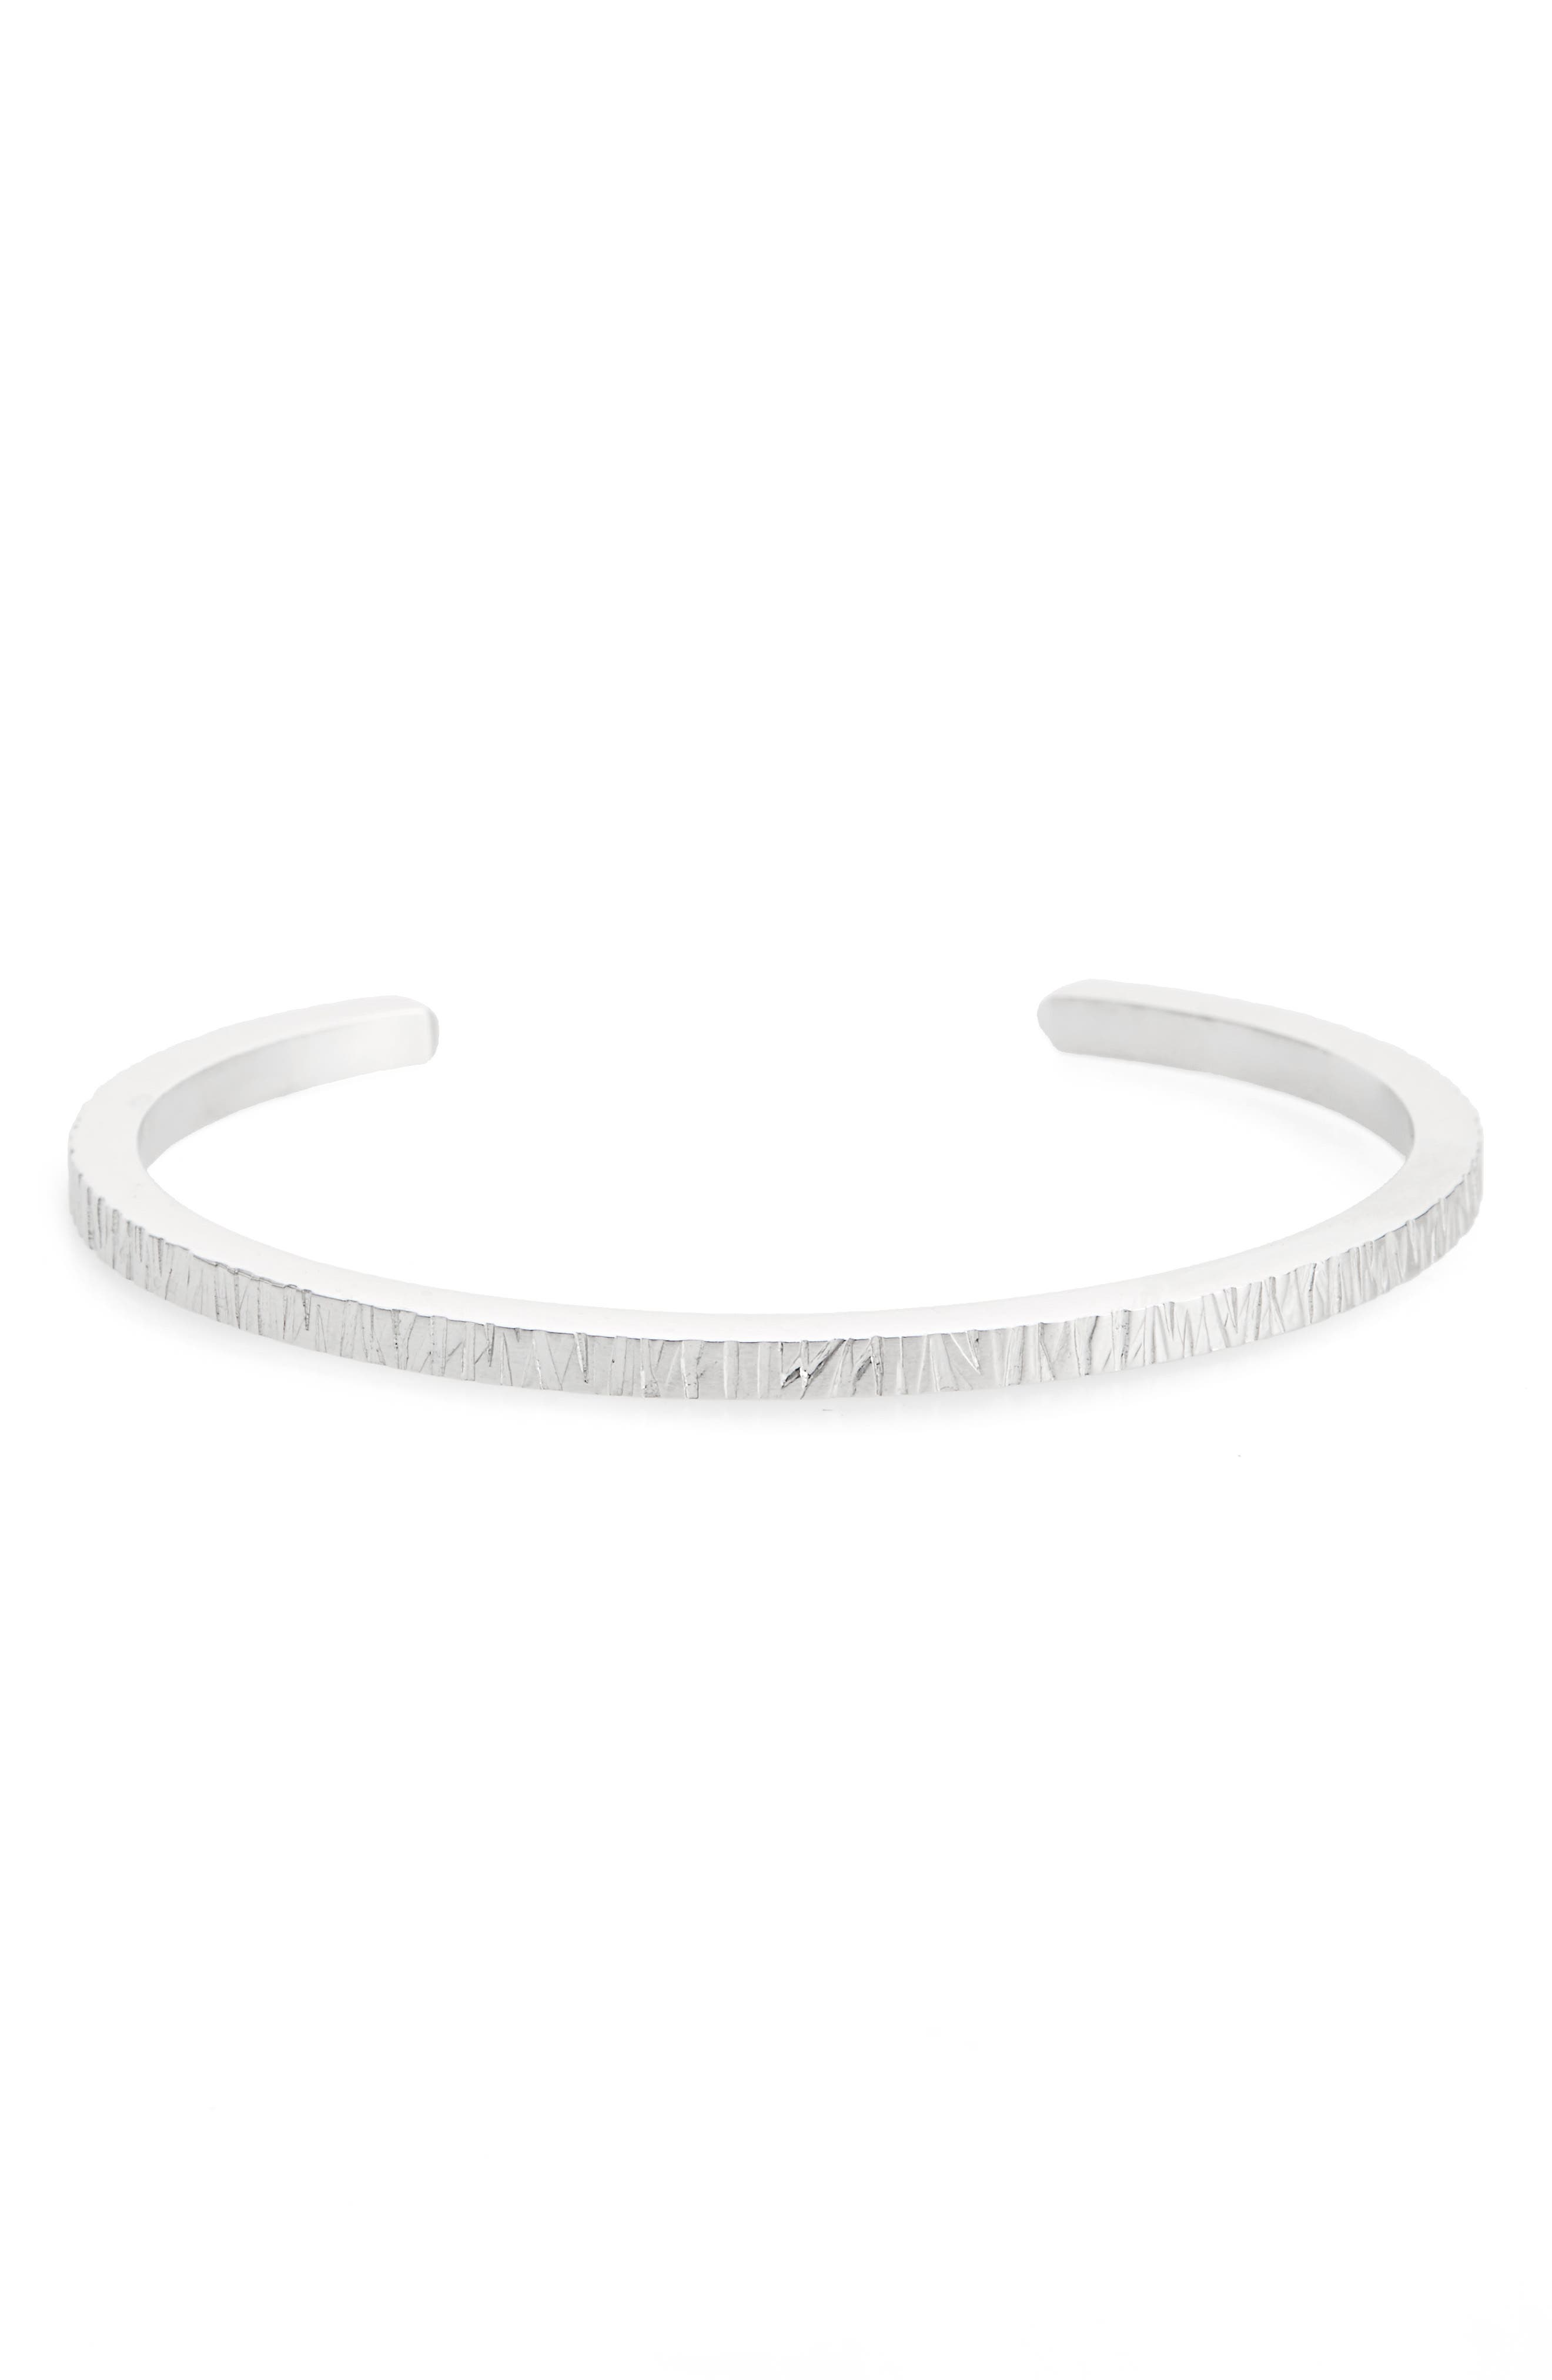 Structured Cuff Bracelet,                             Main thumbnail 1, color,                             925 STERLING SILVER